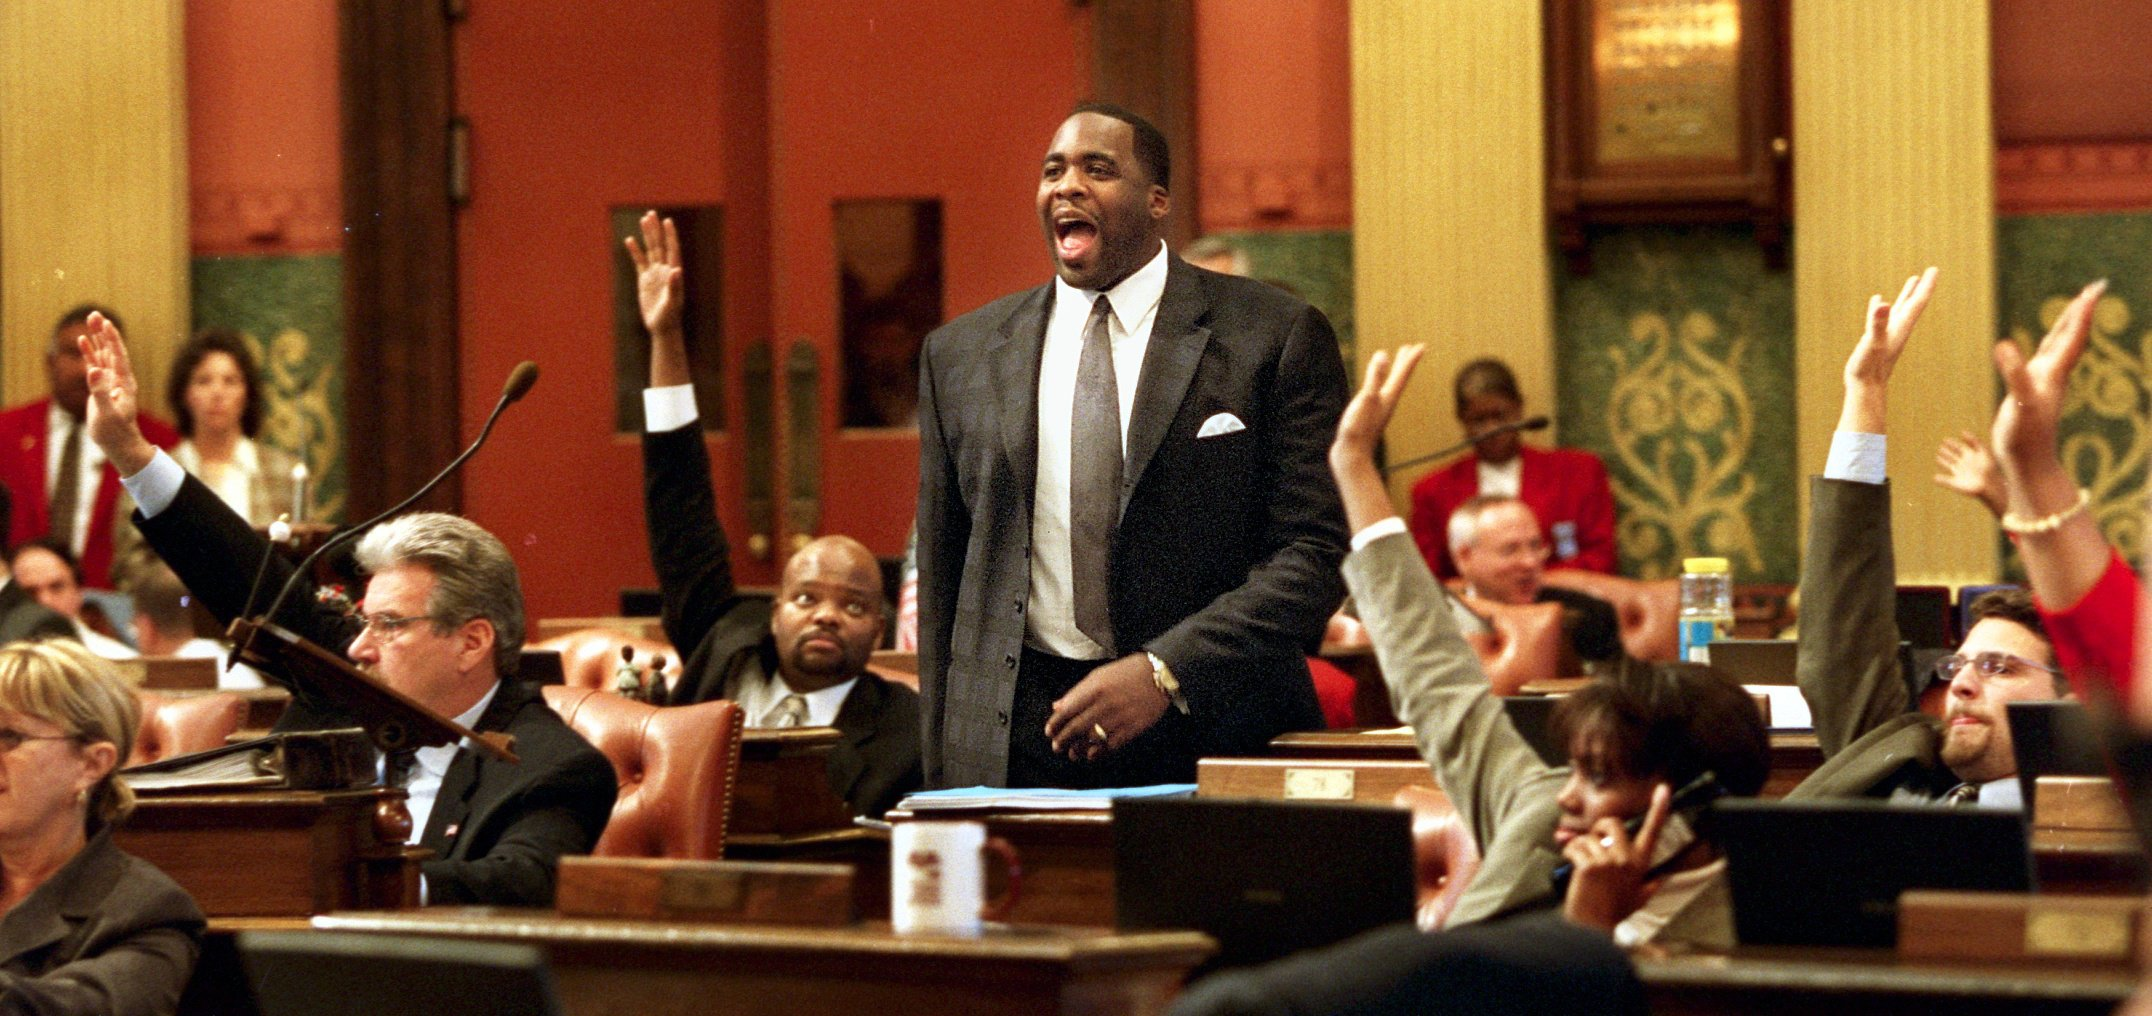 """Kwame screams """"Aye"""" during the passage of a bill at the Capitol in Lansing, October 24, 2001.  Courtesy of the Detroit Free Press."""